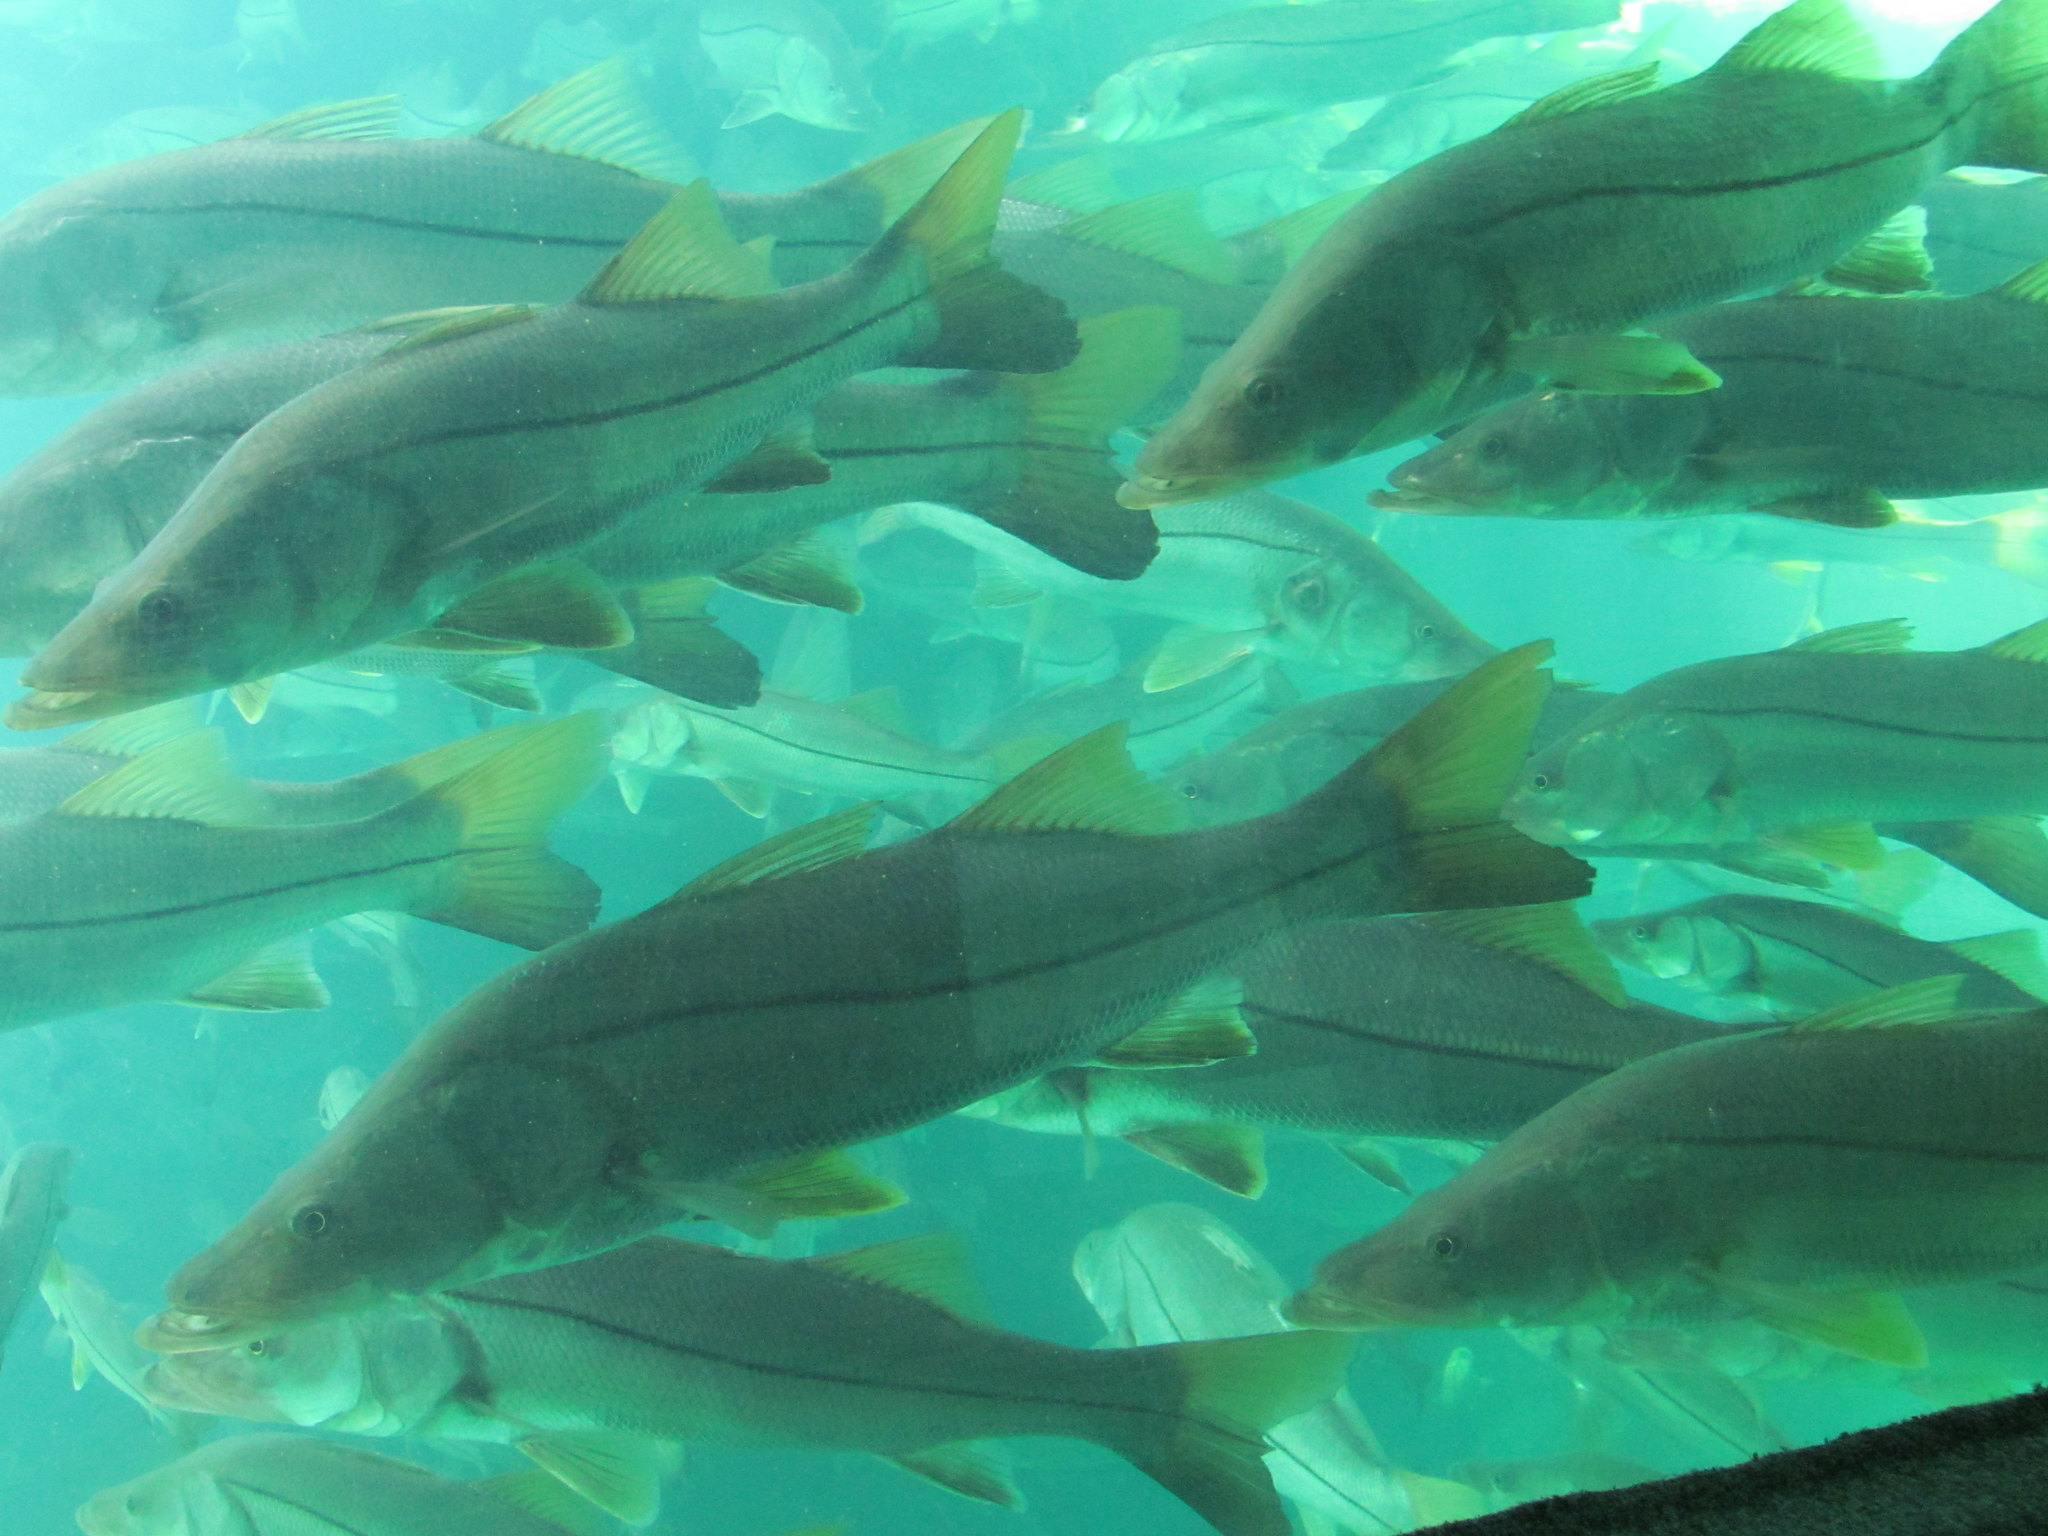 A school of fish underwater